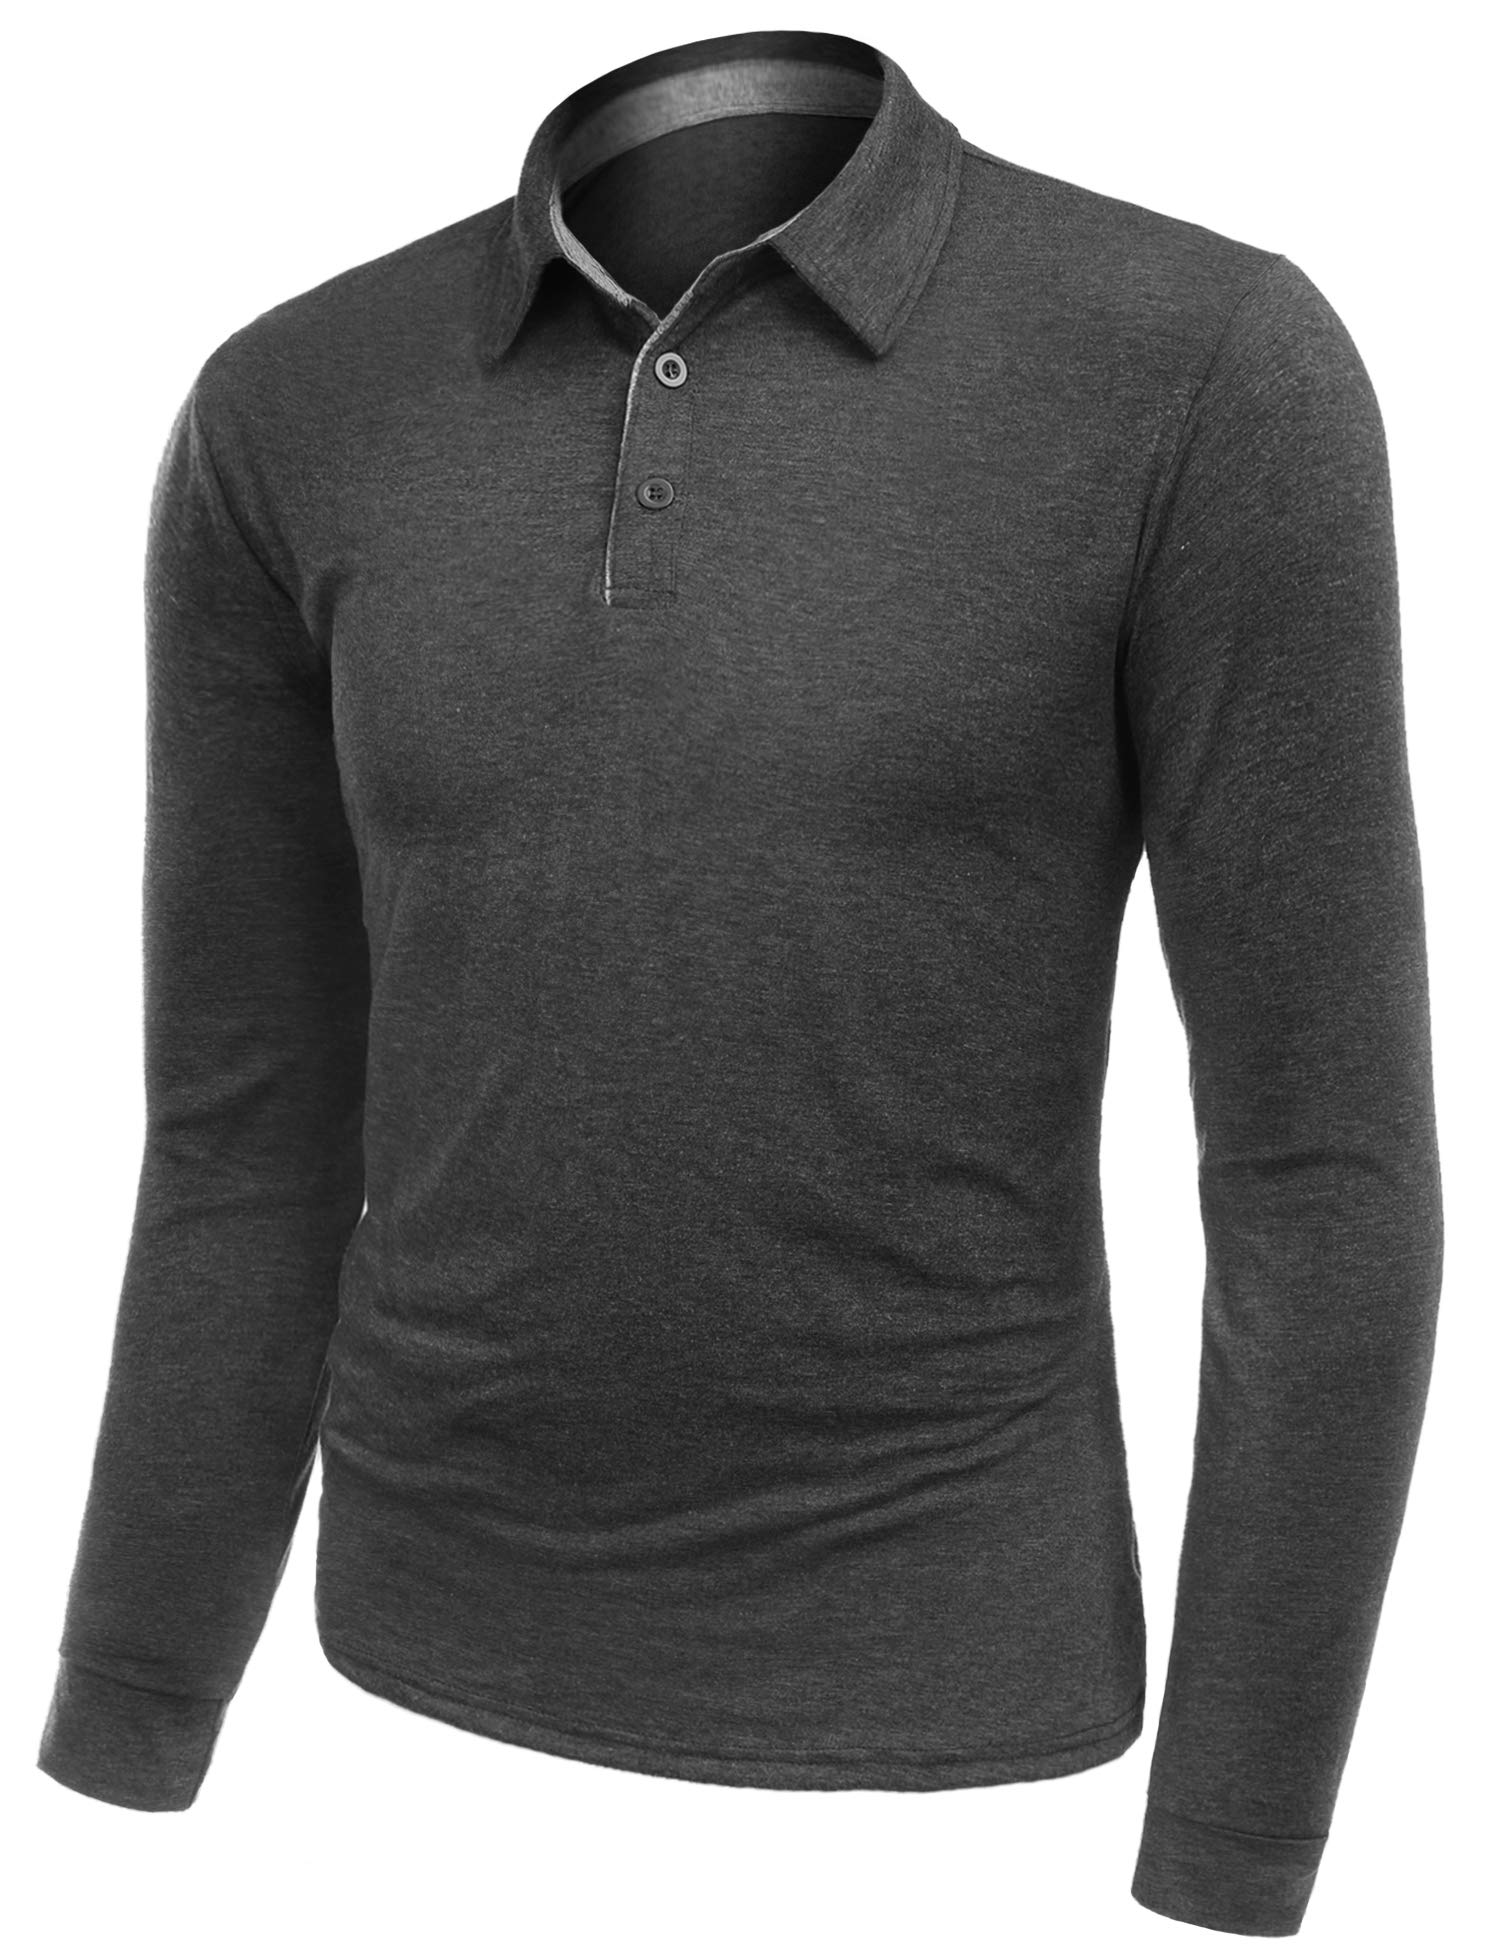 AUDIANO Mens Polo Shirts Long Sleeve Golf T Shirts Casual Outdoor Performance Button Polo Tops